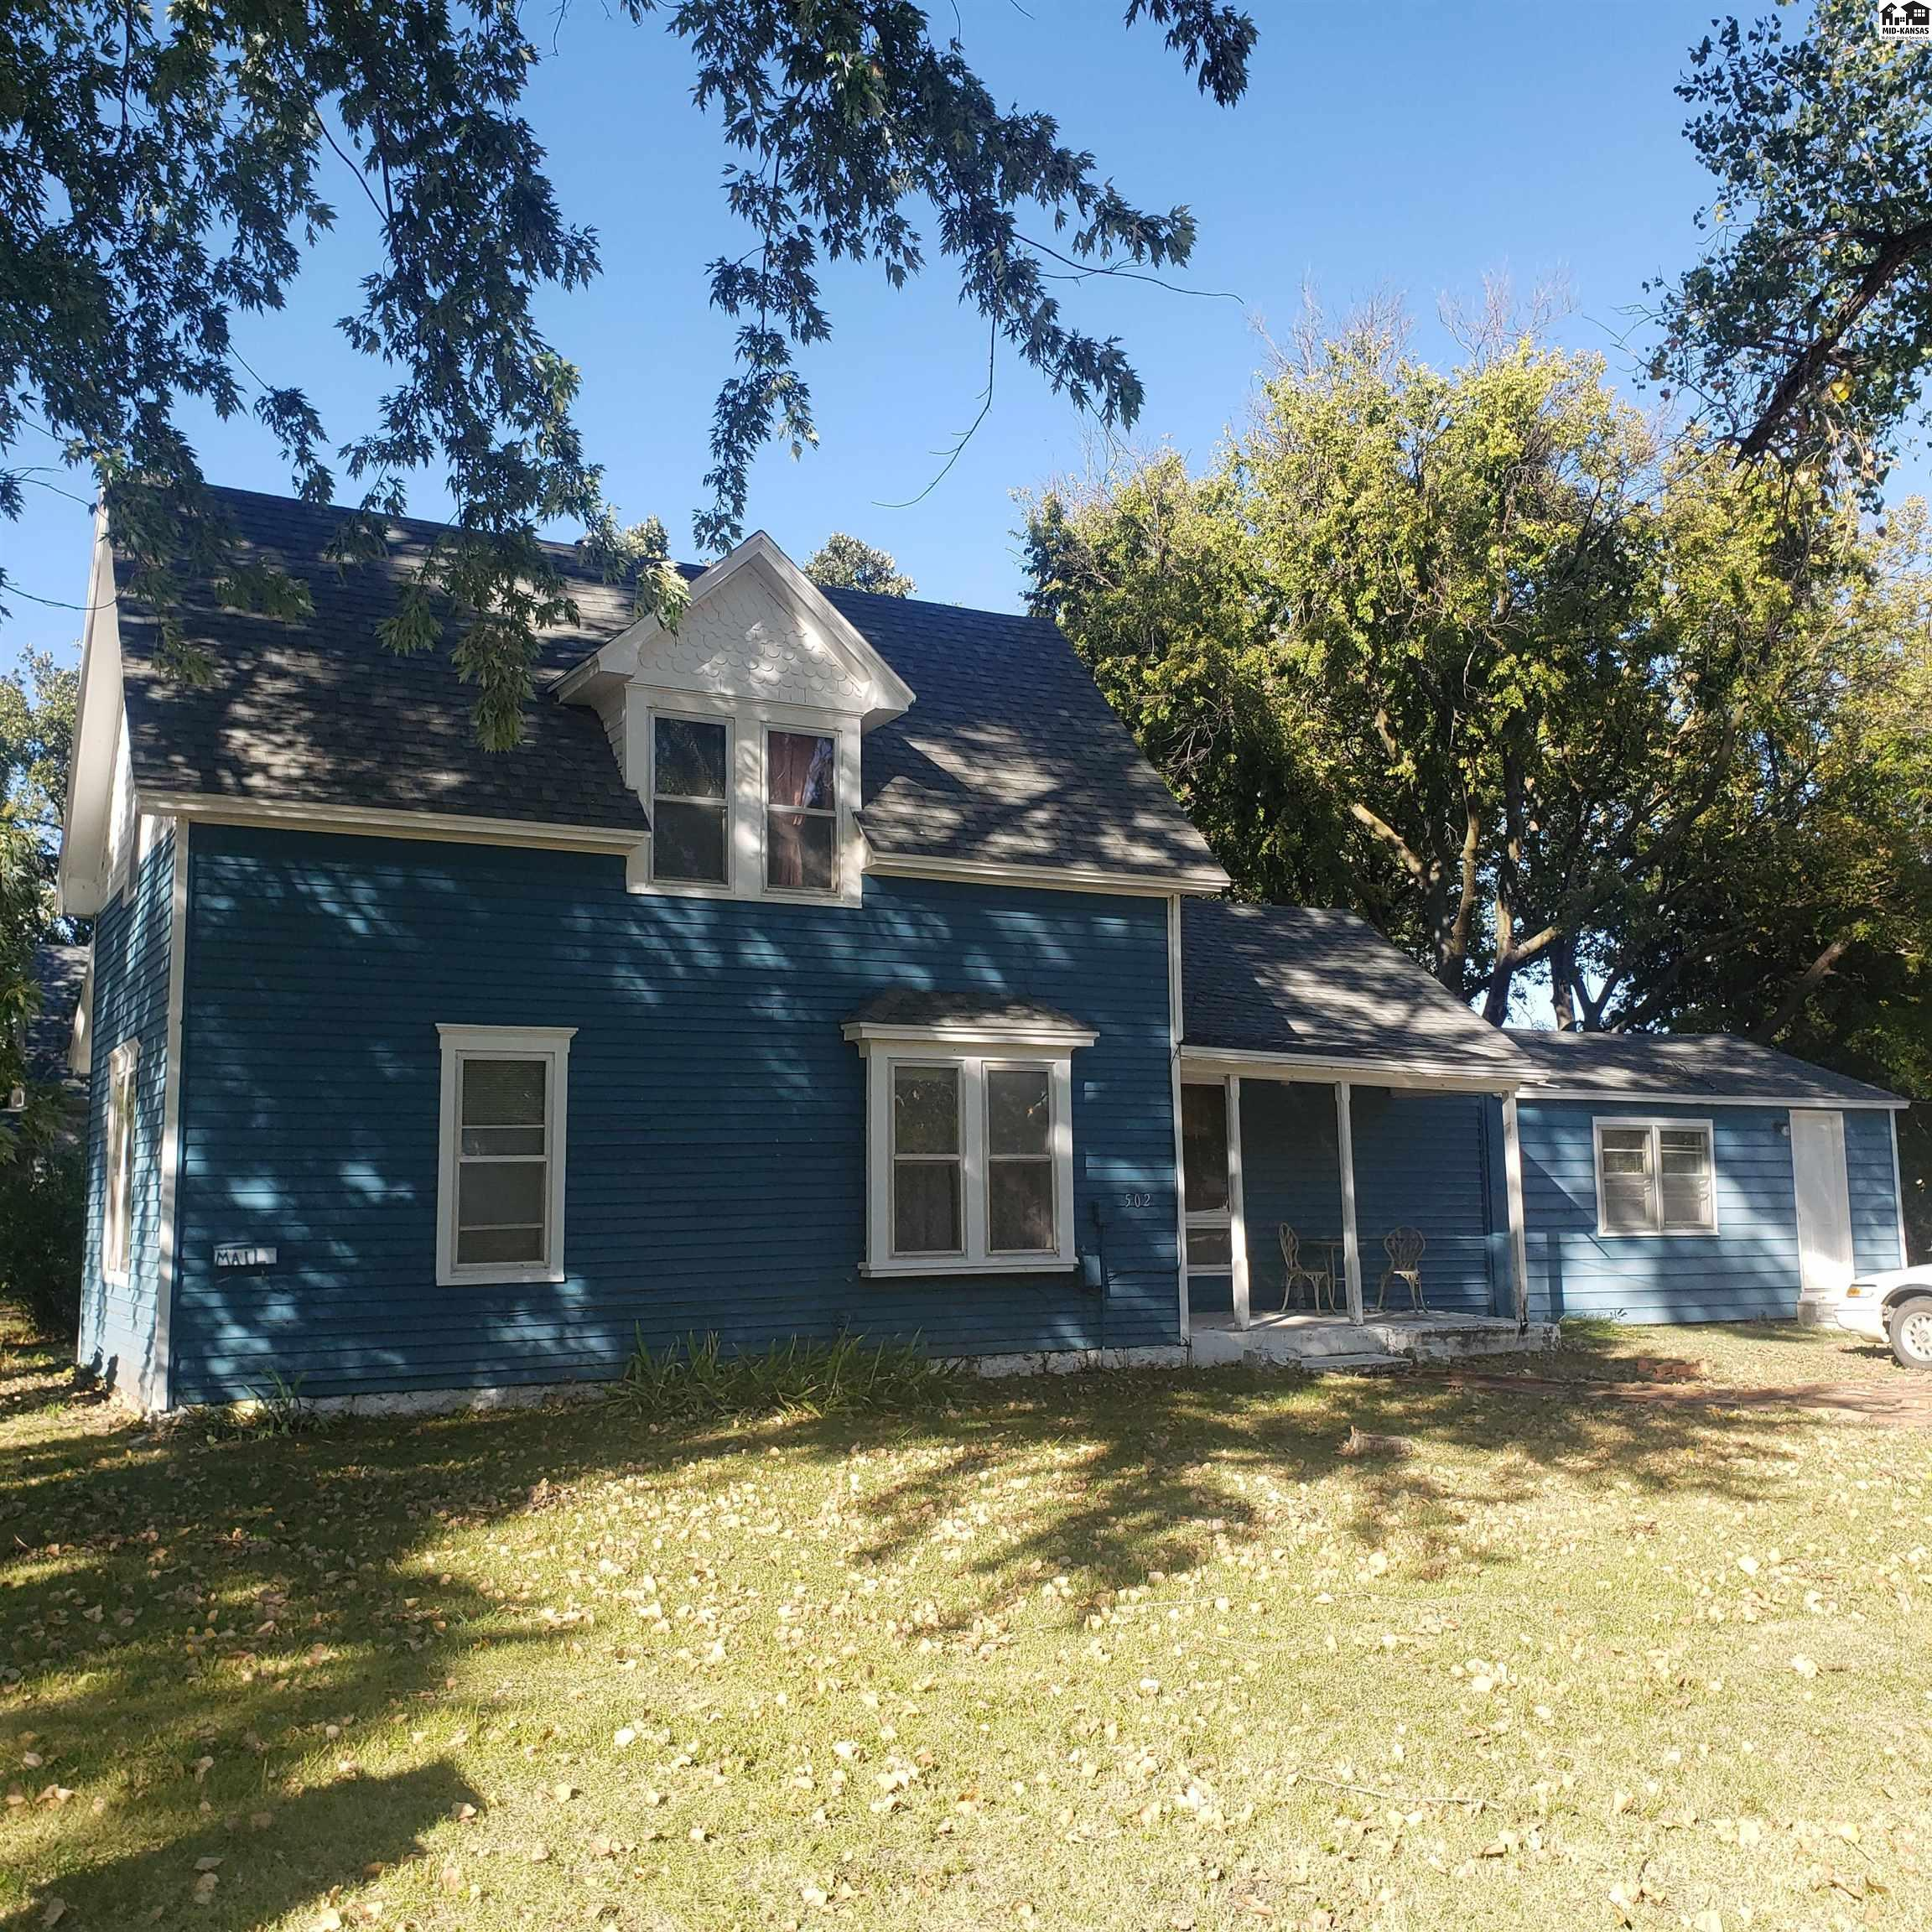 With so many great updates, you wont want to miss making this newly listed 1 1/2 story your own! It sits on a large tree shaded lot with ample room for a future outbuilding or two with alley access. The garage was converted into a master bedroom, but could also be a great bonus space on the main level. There are great sightlines throughout the eat-in kitchen, spacious formal dining room, and living room. Main floor laundry just off the kitchen has some added insulation around the door, and homeowner hung additional plastic on the remaining walls, but they can be moved aside for inspections. The second floor houses the additional 2 bedrooms, with the closet of the green room located just outside of the door. Updates include: 2007-2010 -New roof -Home was weatherized with foam insulation throughout. During the hottest months, electric has been around $200, and in the coldest months, the gas has been around $100 with the single homeowner.  2015 -New A/C motor and parts plus thermostat 2017-2019 -New paint in bedrooms, bathroom, hallways, kitchen, and the exterior -New laminate wood flooring and carpet on main level -New custom fit insulated exterior door and stairs for the main floor bedroom 2021  -New furnace motor